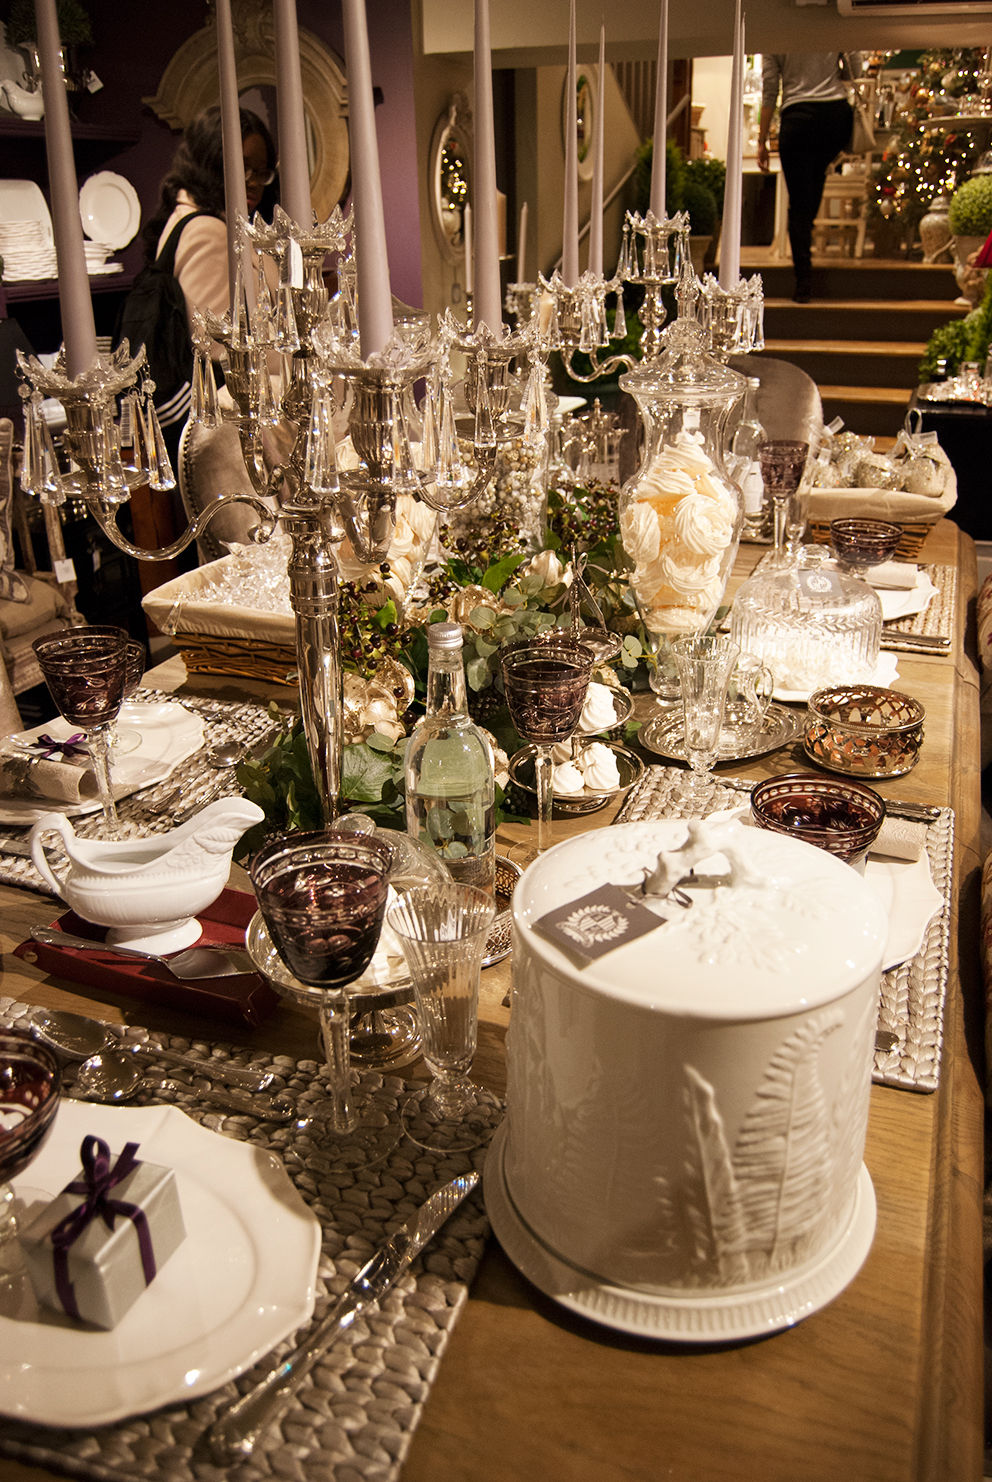 Glamorous table setting